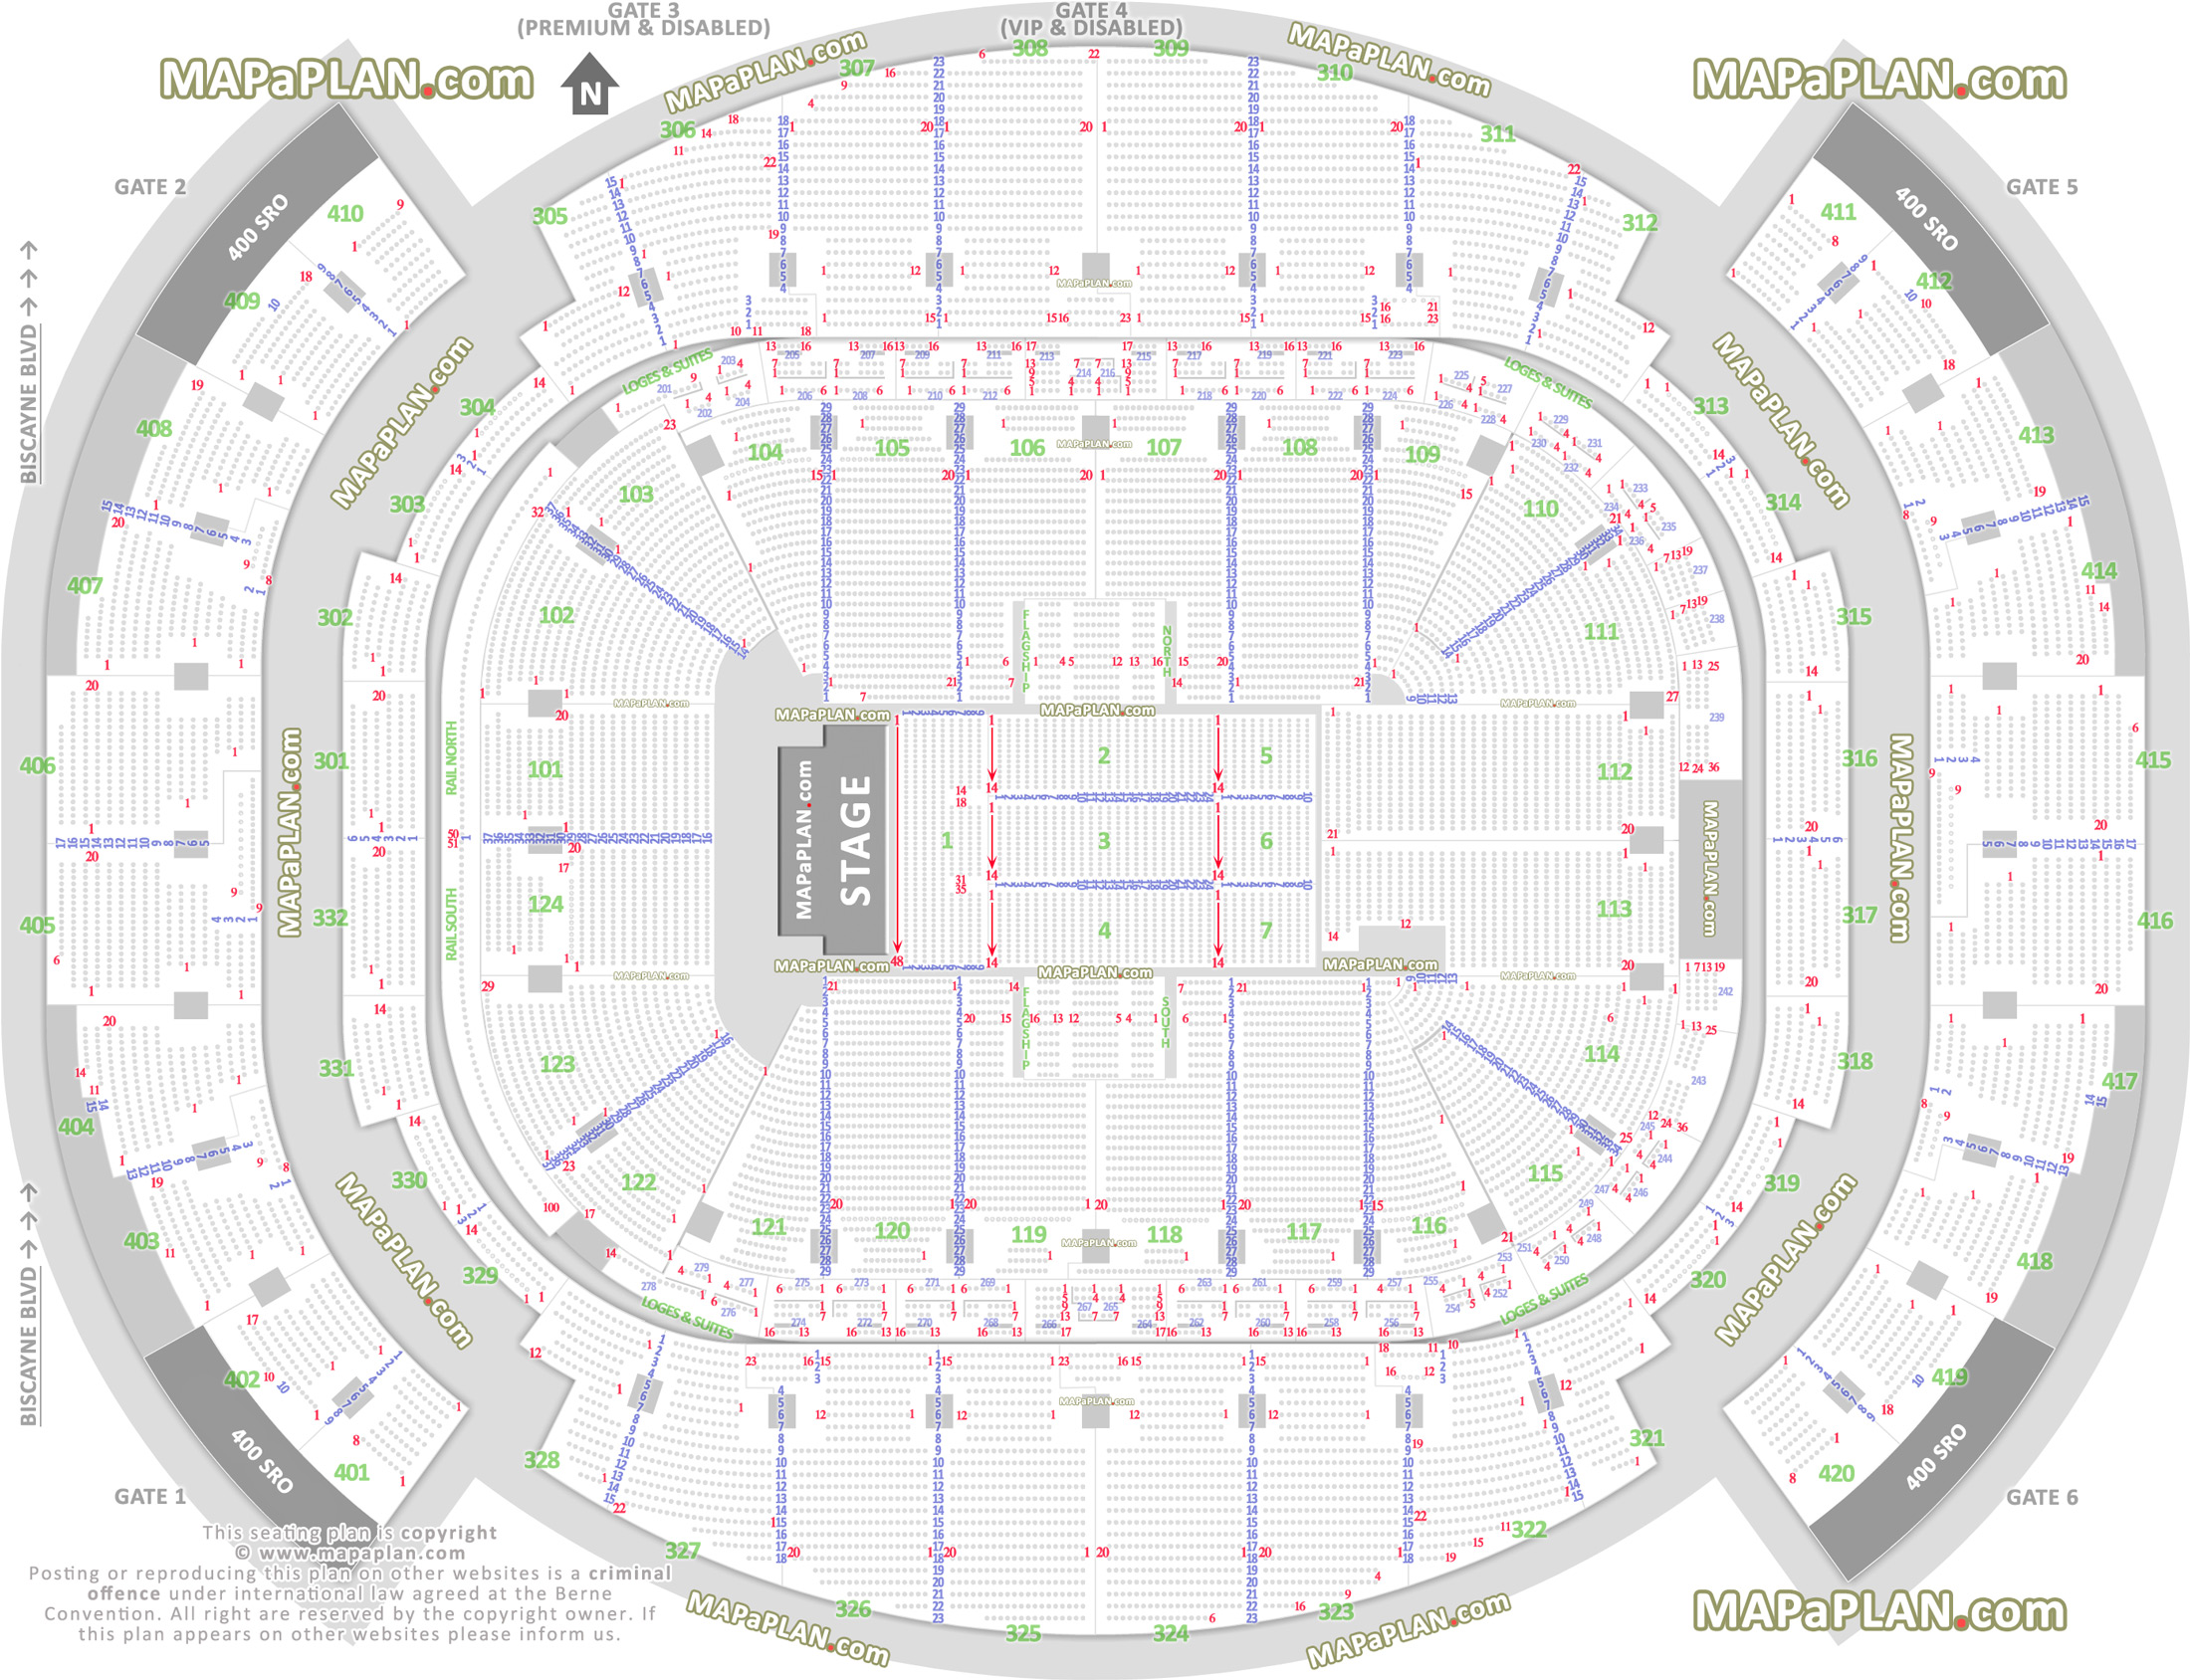 miami heat arena seating chart with seat numbers - marta